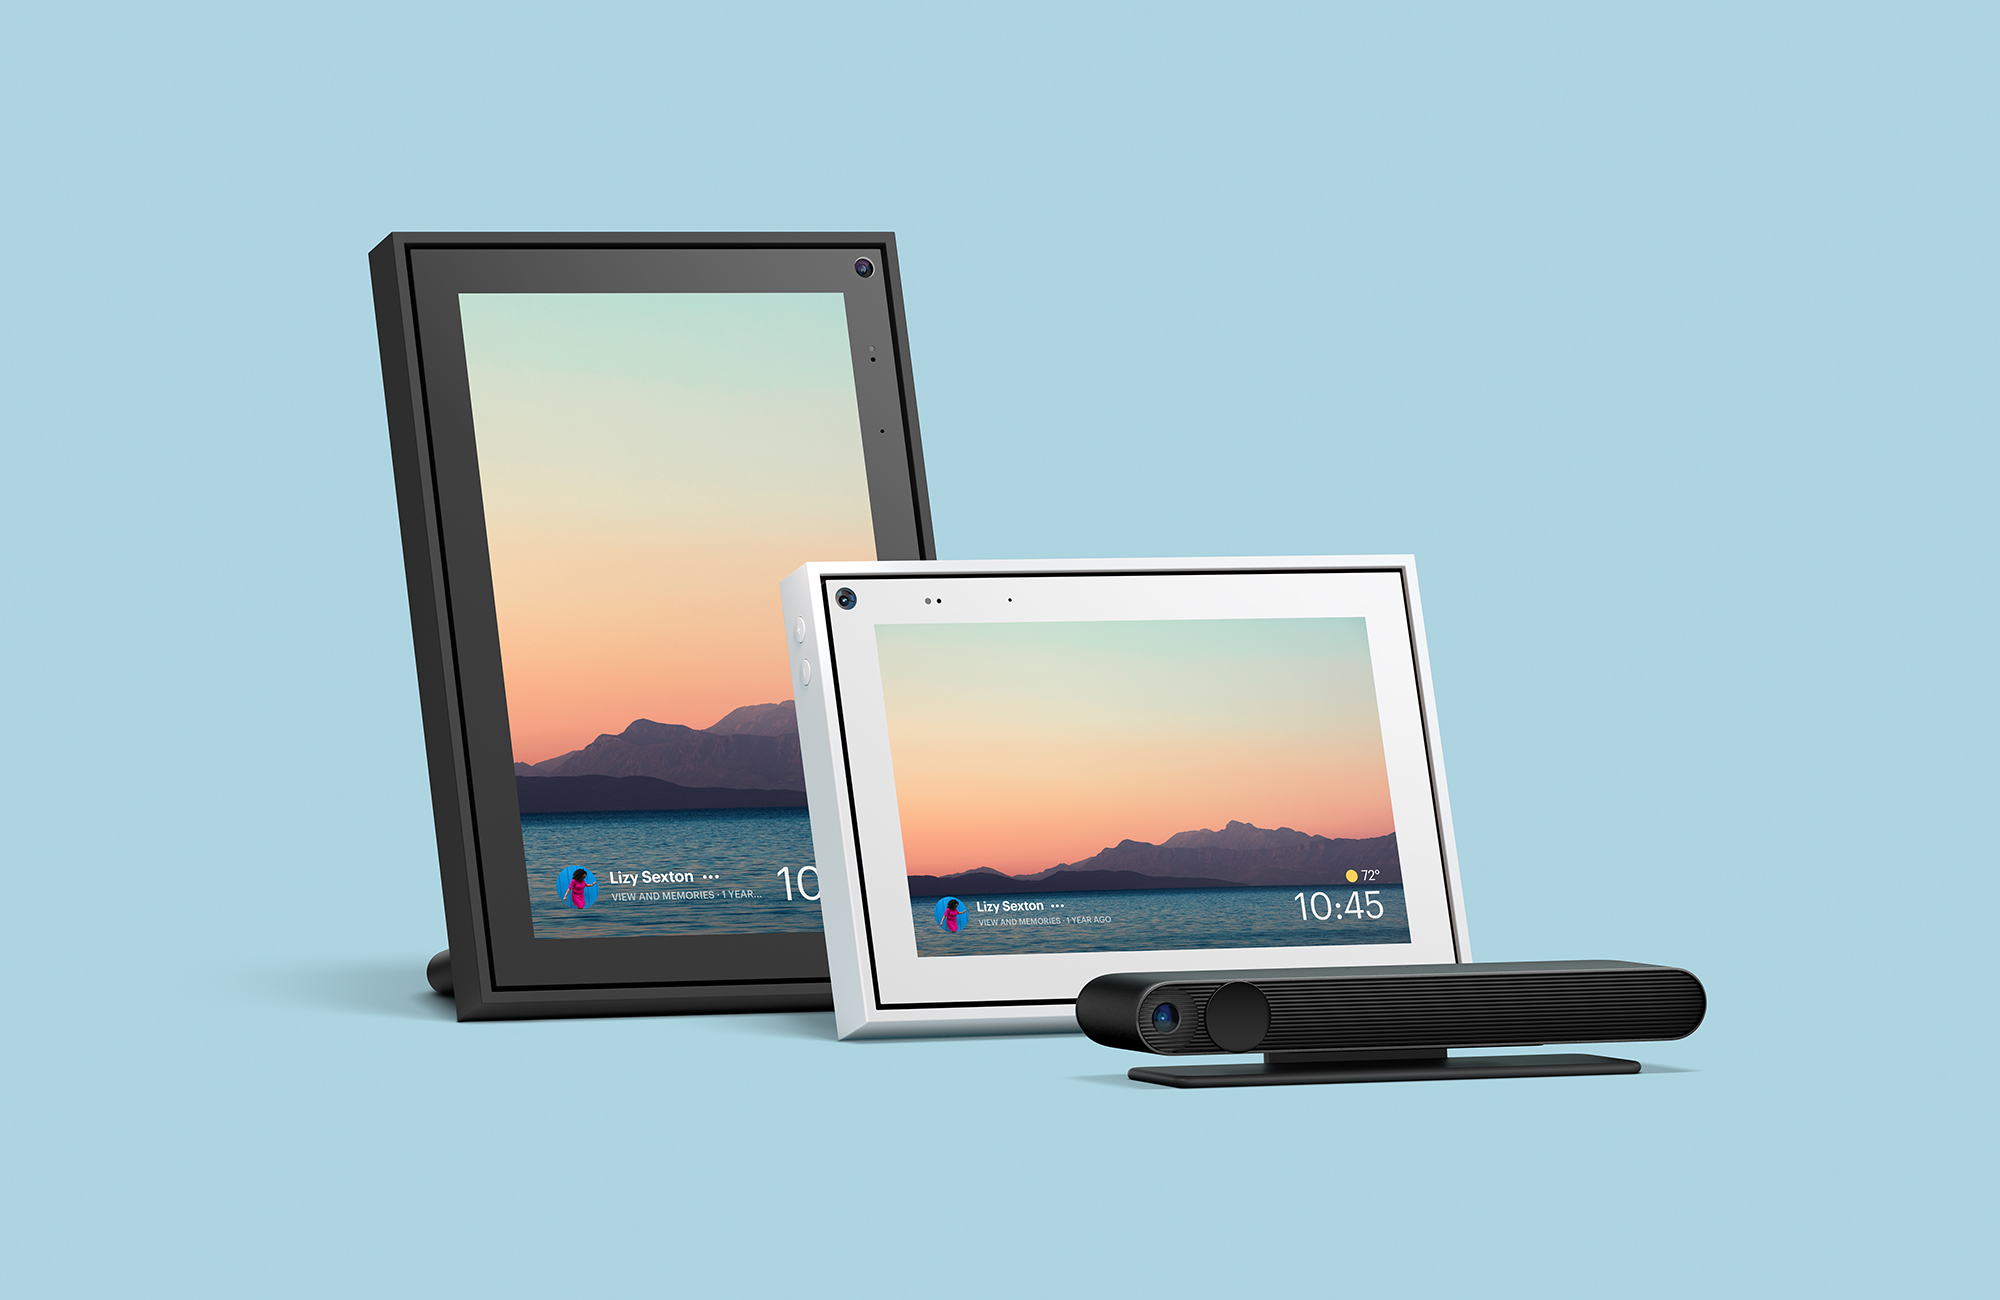 Meet The New Portal Family Smart Video Calling On Your Tv And Anywhere In Your Home About Facebook Facebook collects and may review voice data from interactions with the portal. meet the new portal family smart video